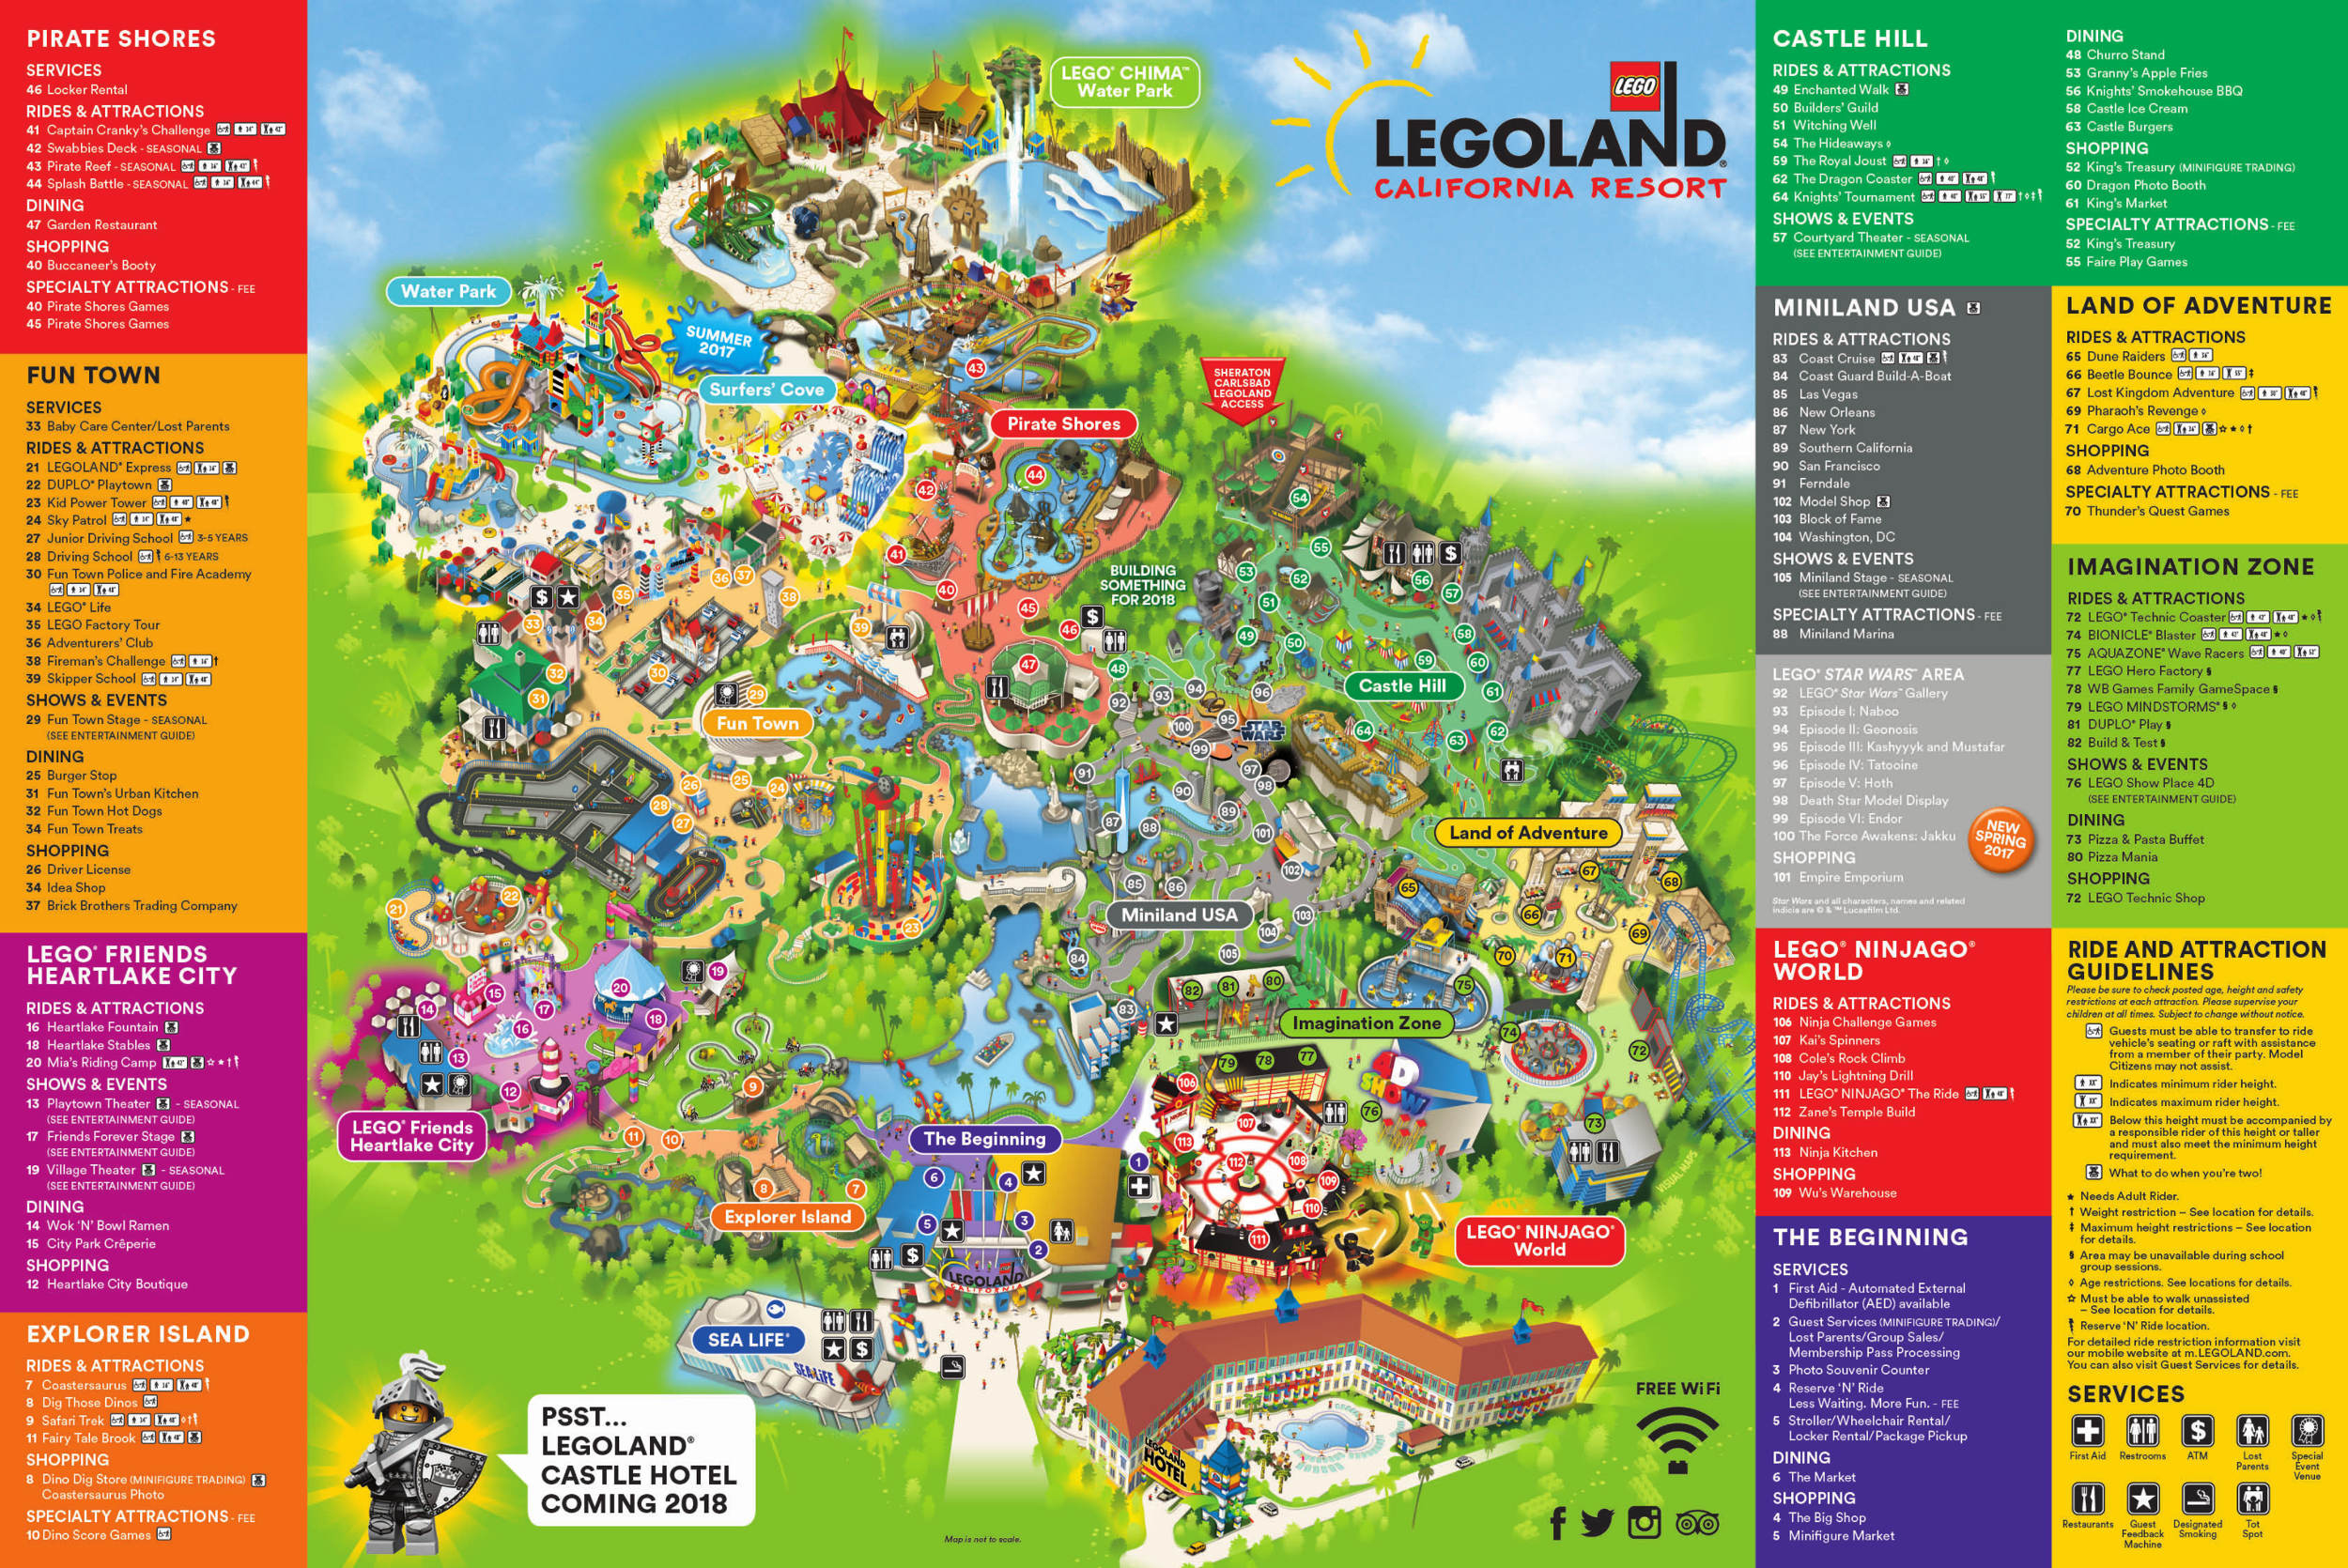 Theme Park Brochures Six Flags Great America In California S Map - California's Great America Map 2018